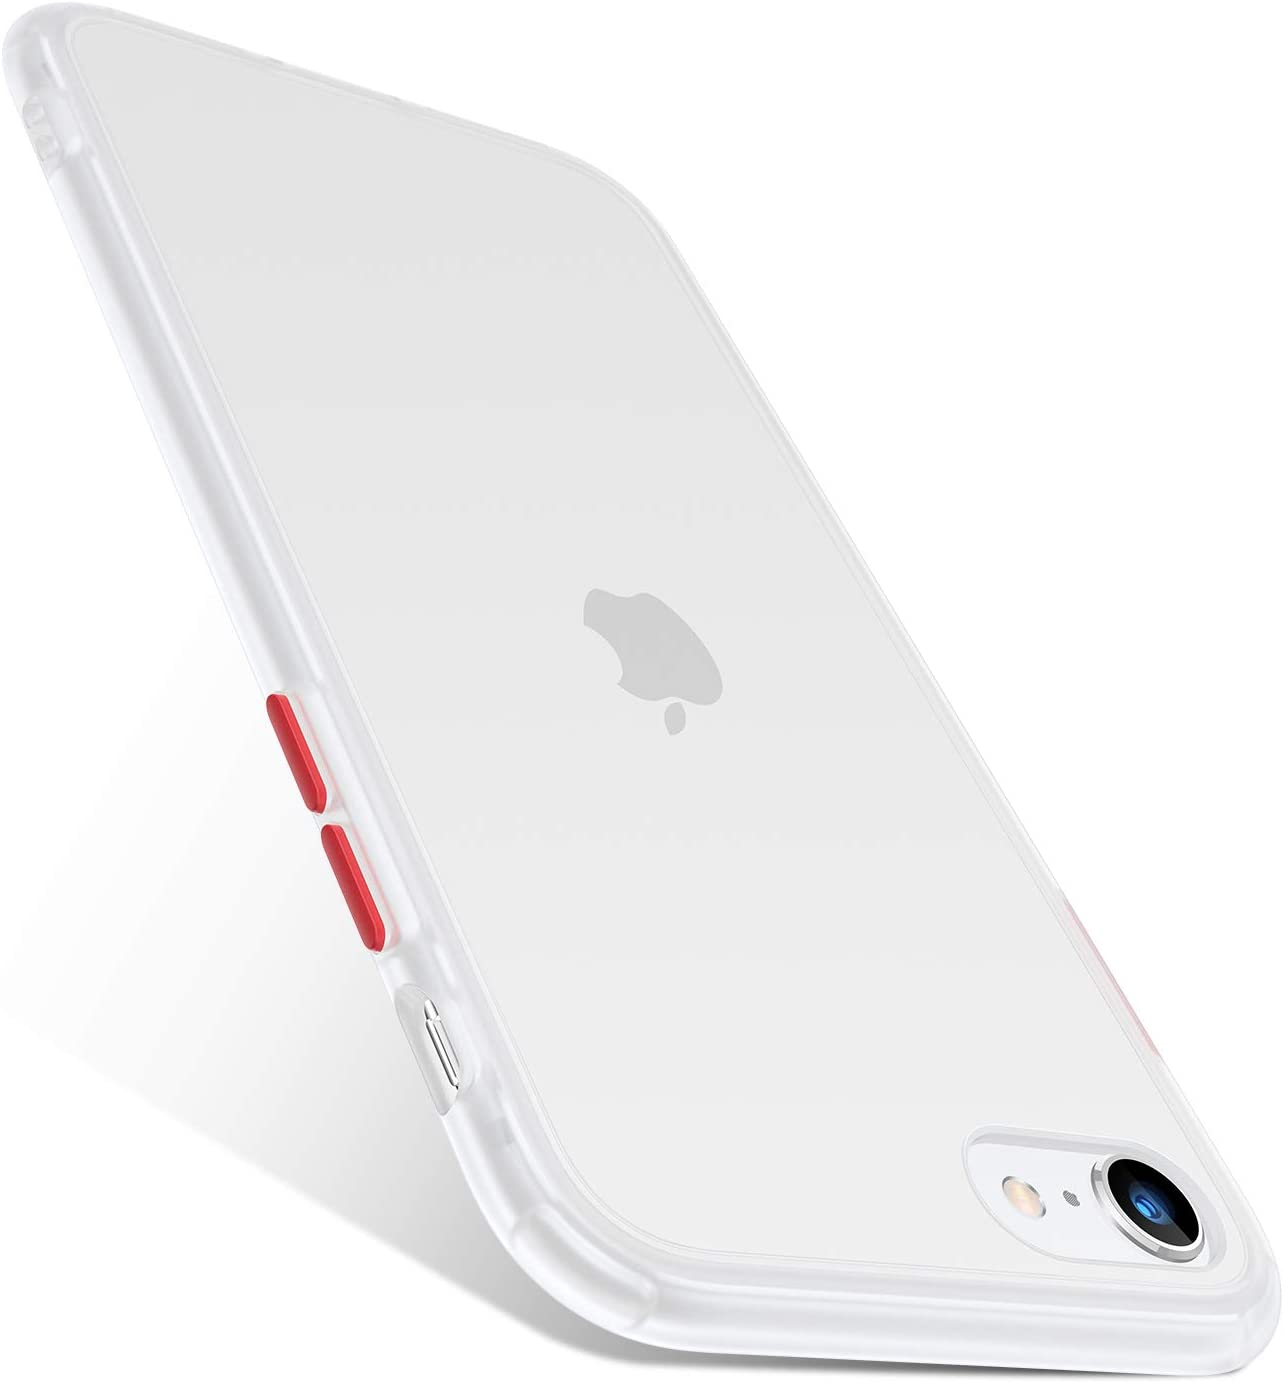 TORRAS Shockproof Compatible for iPhone SE Case 2020 & iPhone 8 Case [Military Grade Drop Test] Translucent Matte Back Silicone Bumper Protective Slim for iPhone SE 2020/8/7 Case (White)